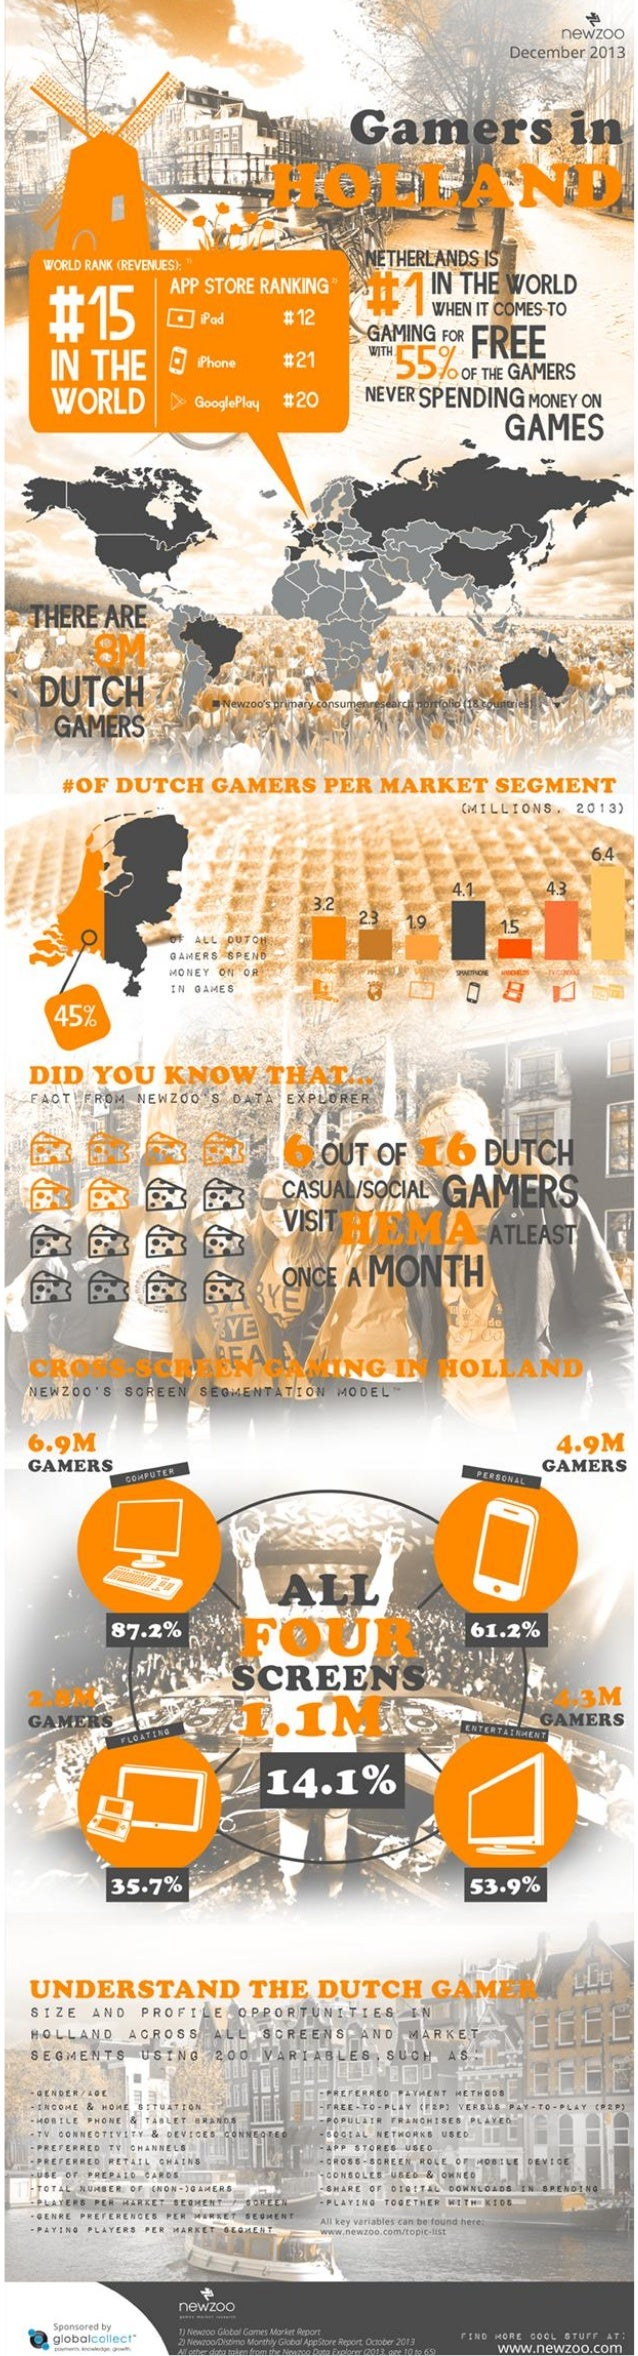 Gamers in holland